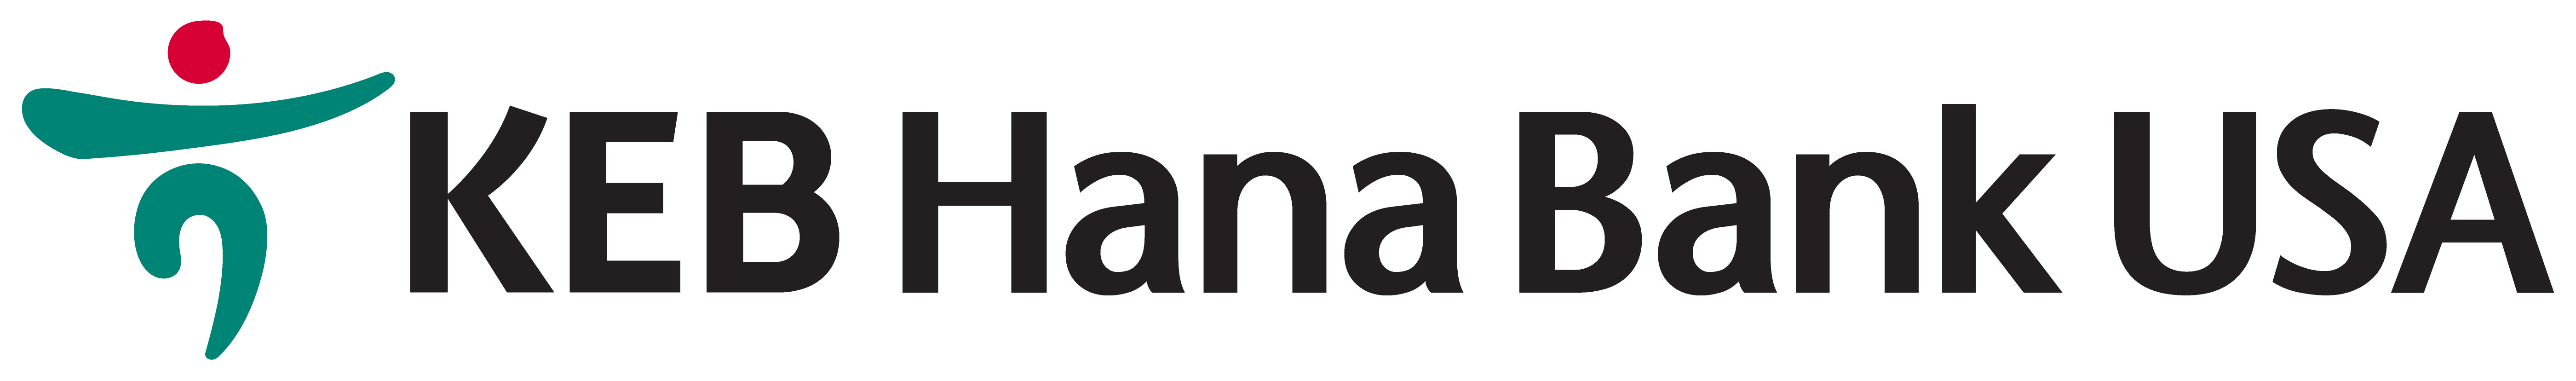 KEB Hana Bank USA Logo